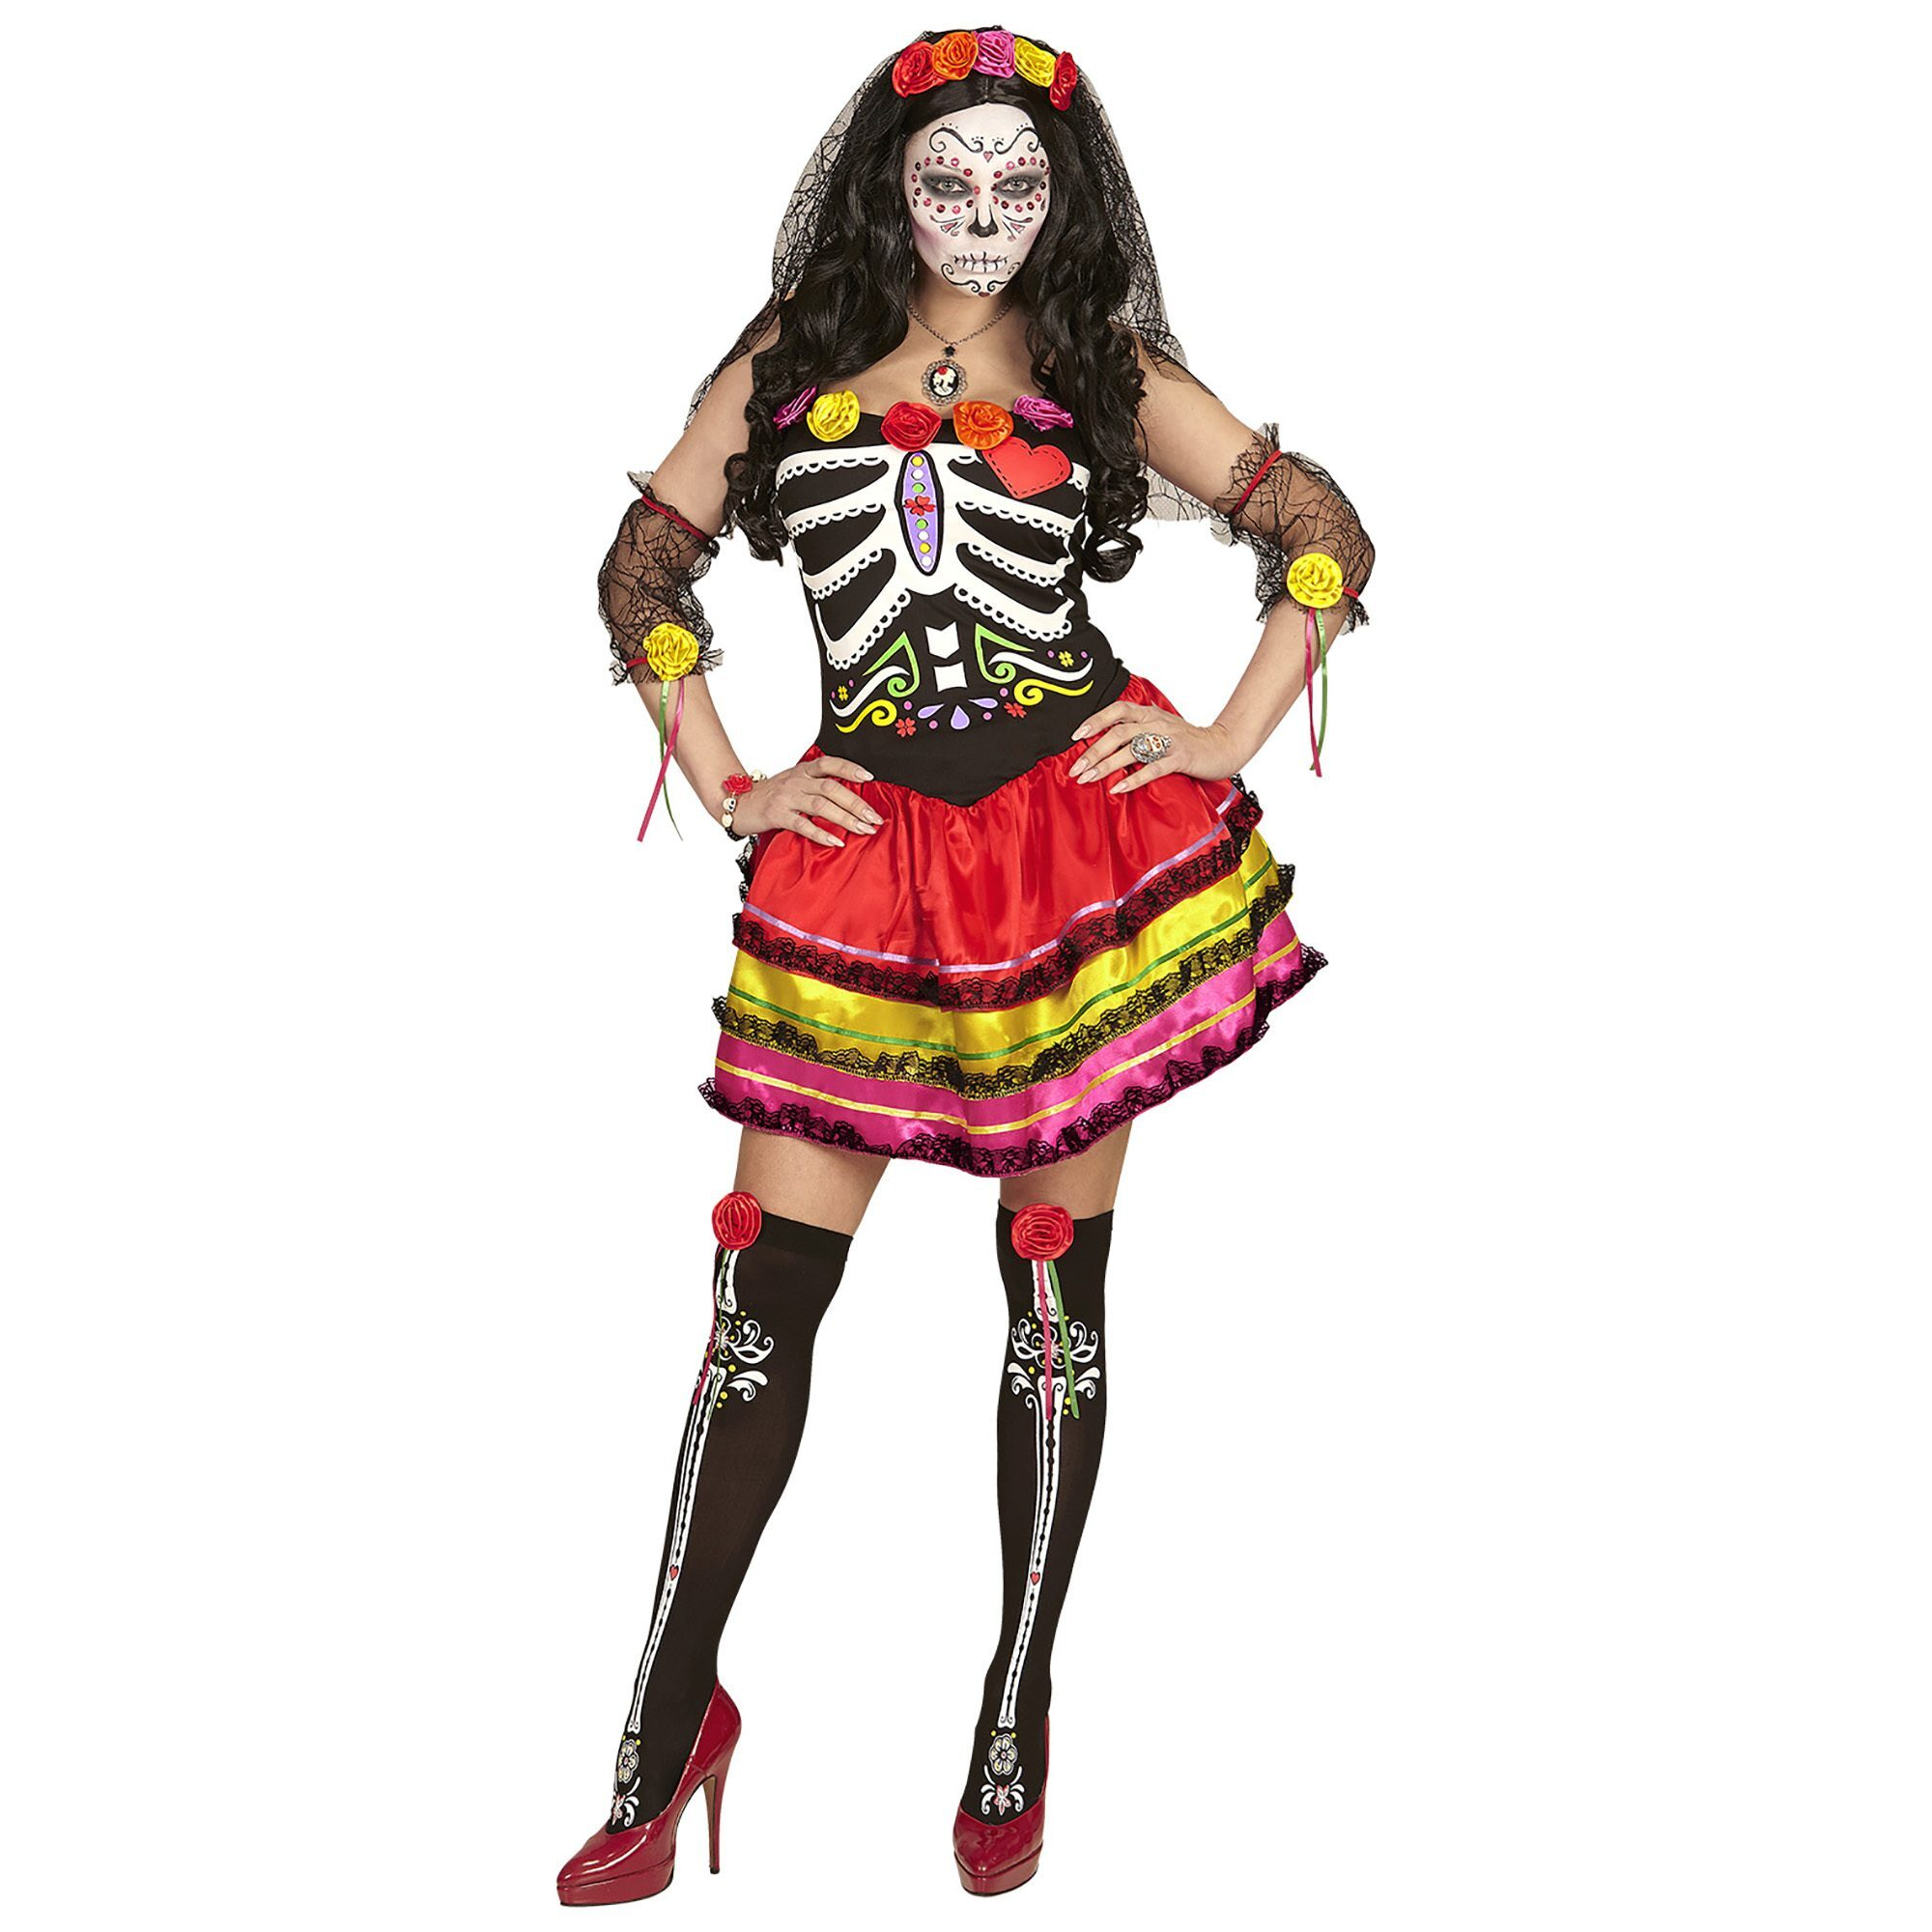 Day of the dead outfit dames